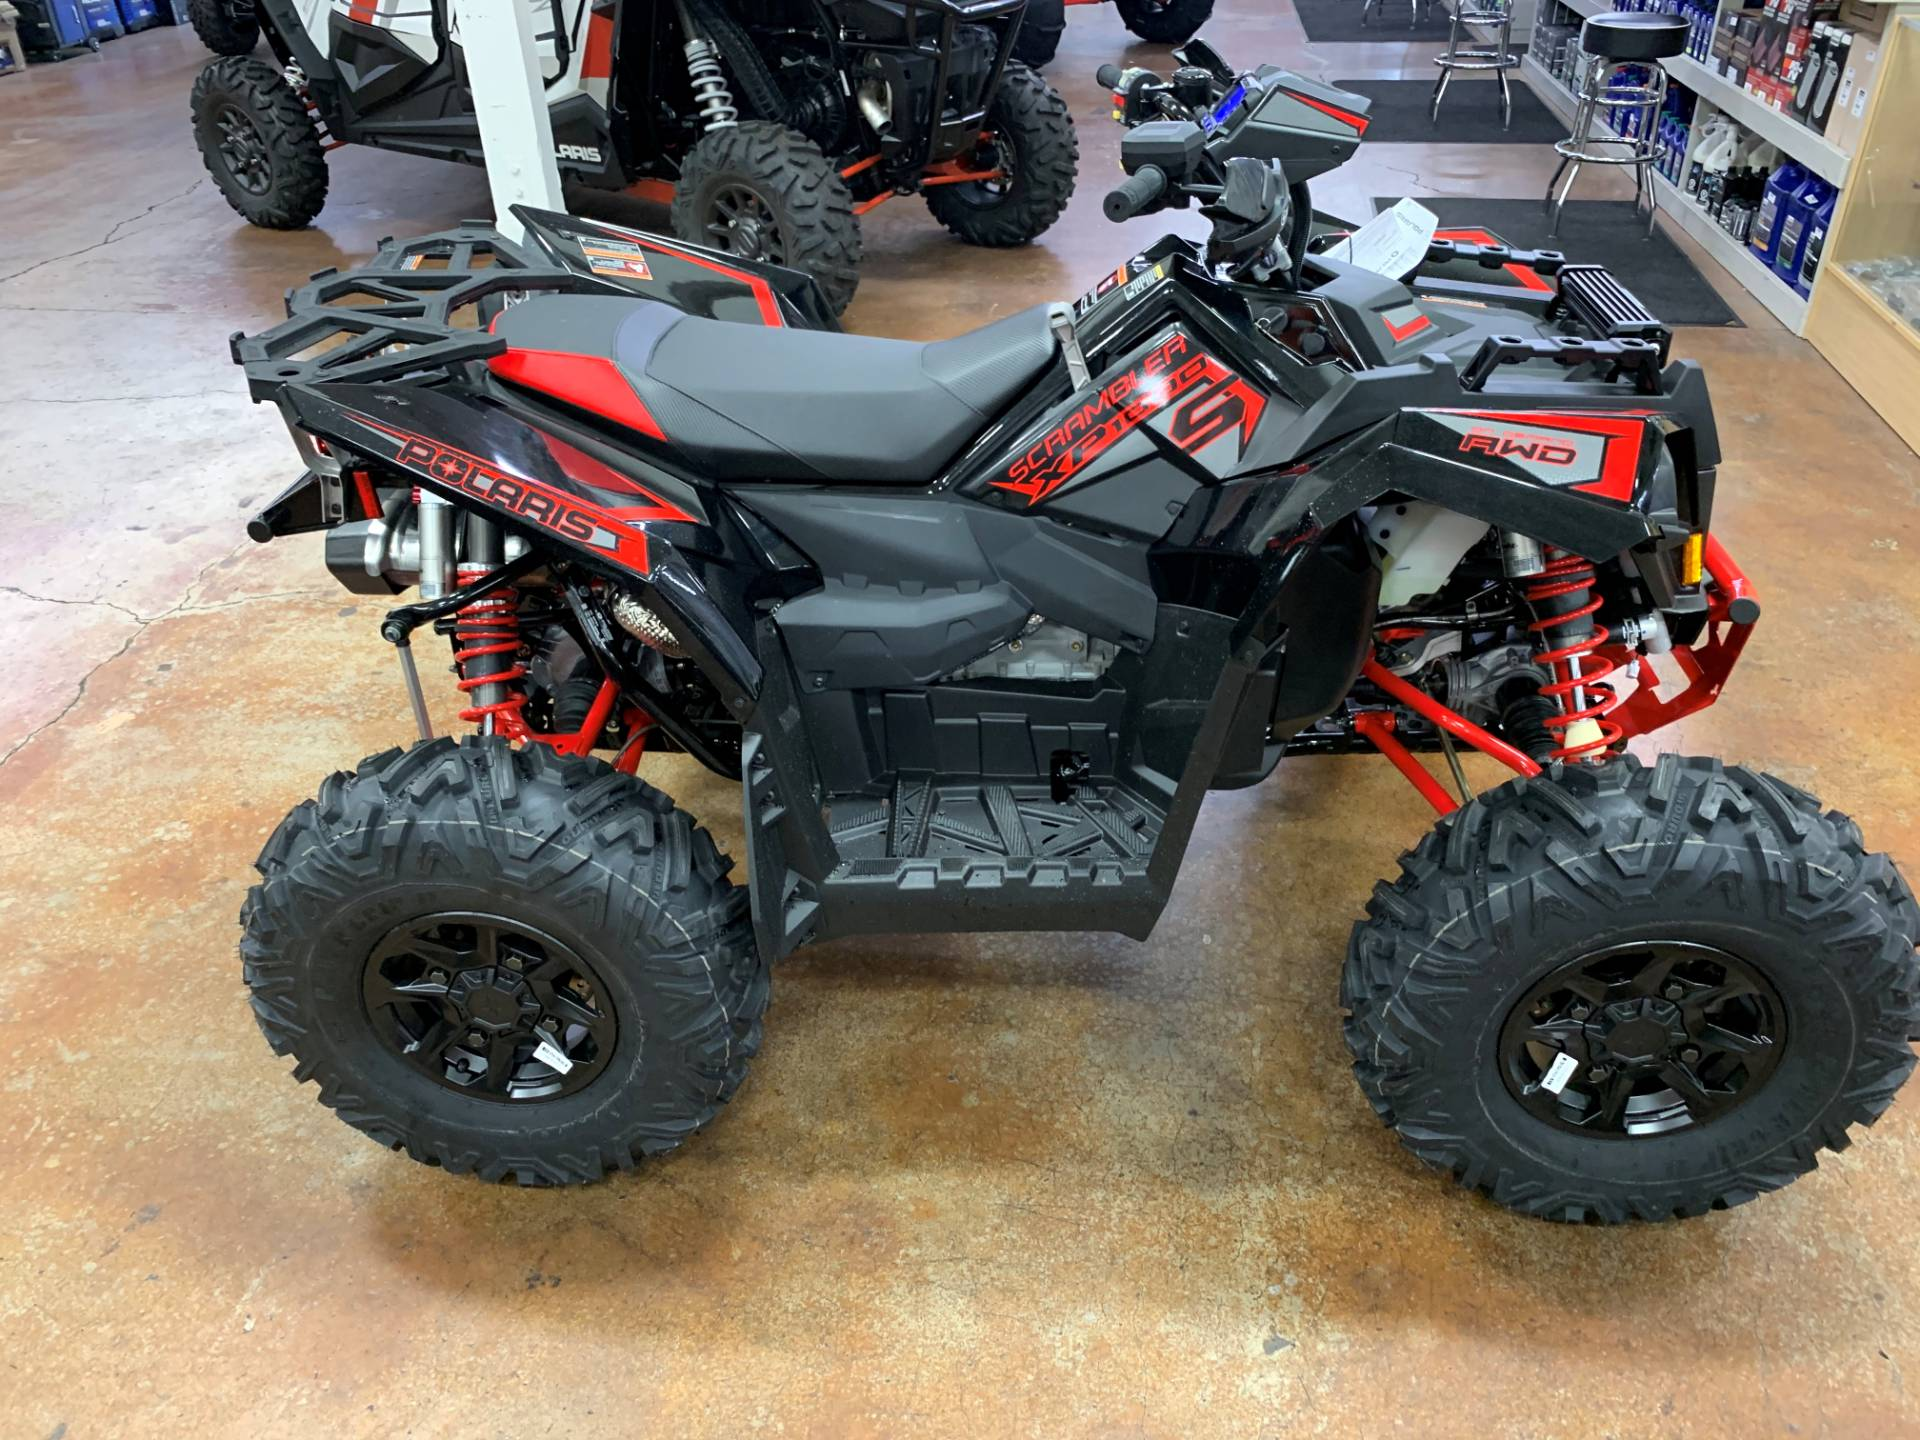 2020 Polaris Scrambler XP 1000 S in Tualatin, Oregon - Photo 8